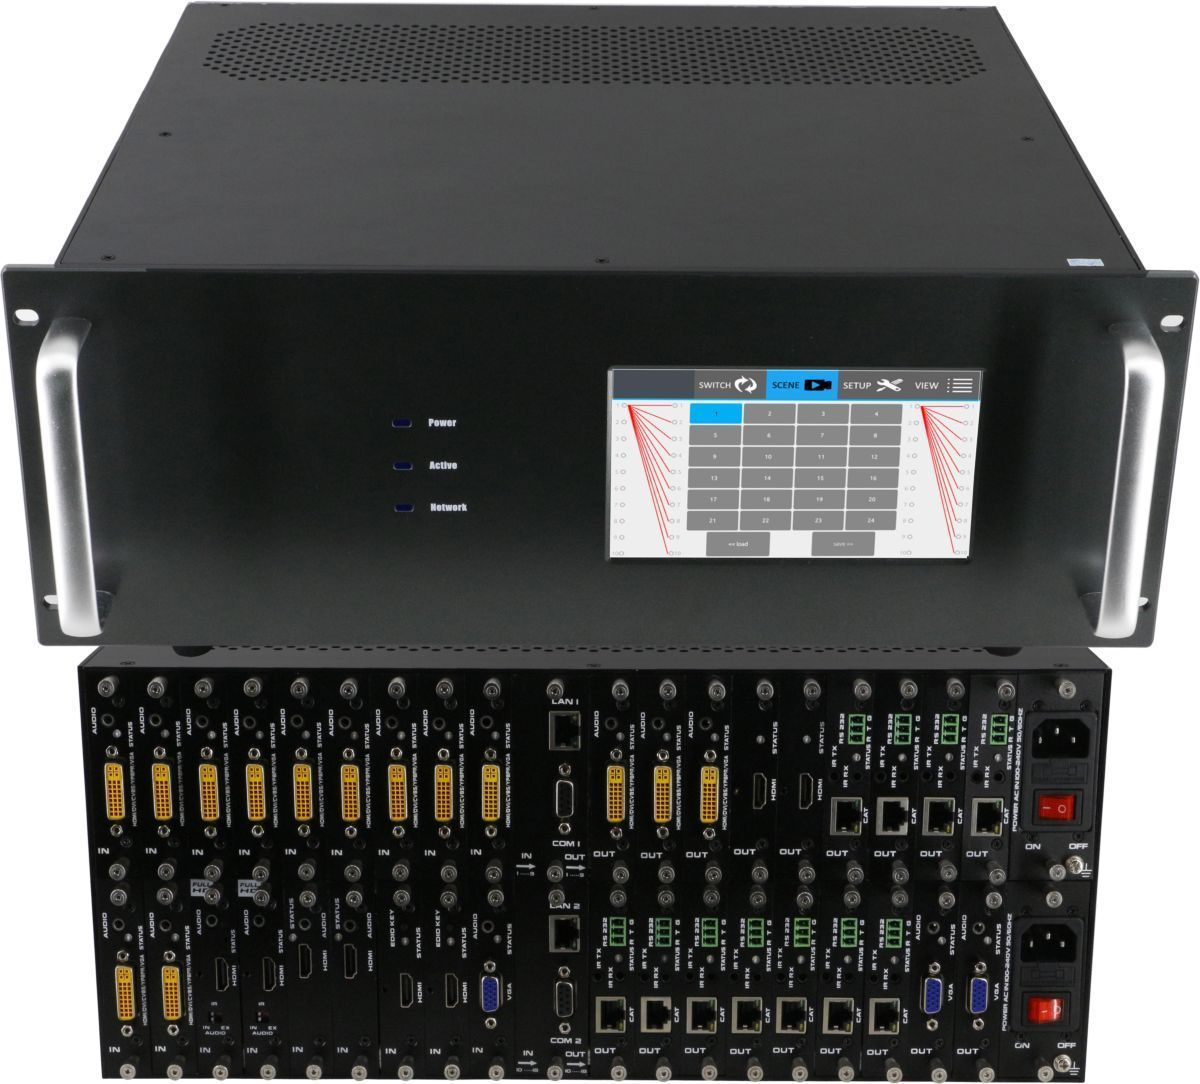 4K 4x18 HDMI Matrix Switcher with Color Touchscreen